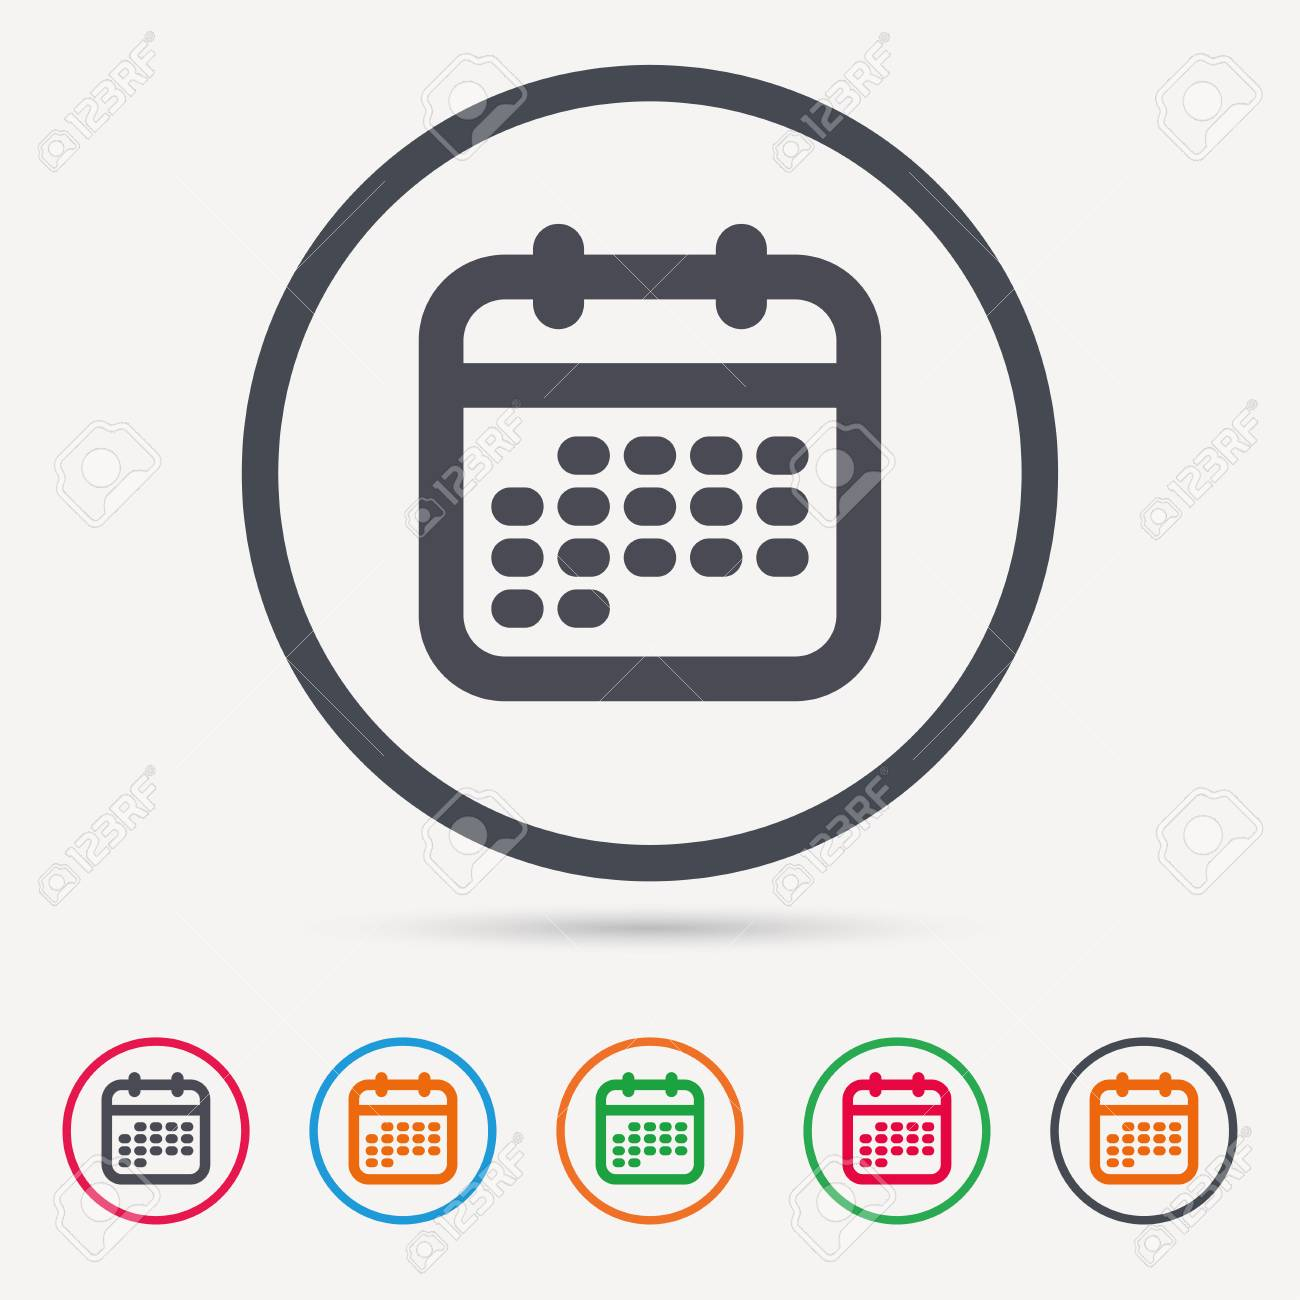 Calendar Icon. Events Reminder Symbol. Round Circle. Colored.. intended for Calendar Icon Round